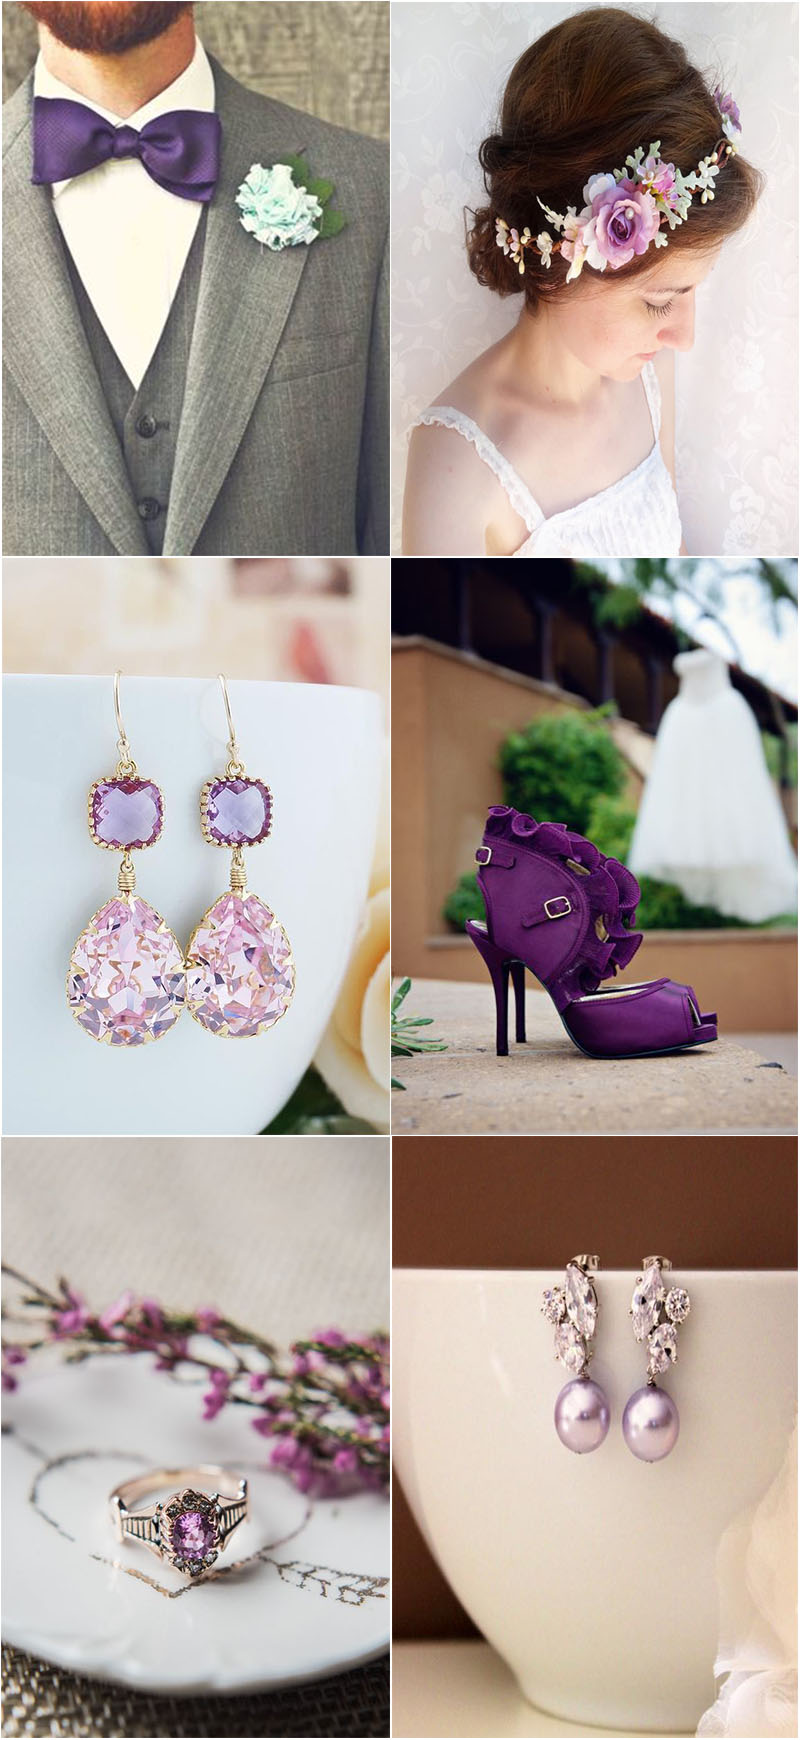 delicate violet wedding accessories to shine